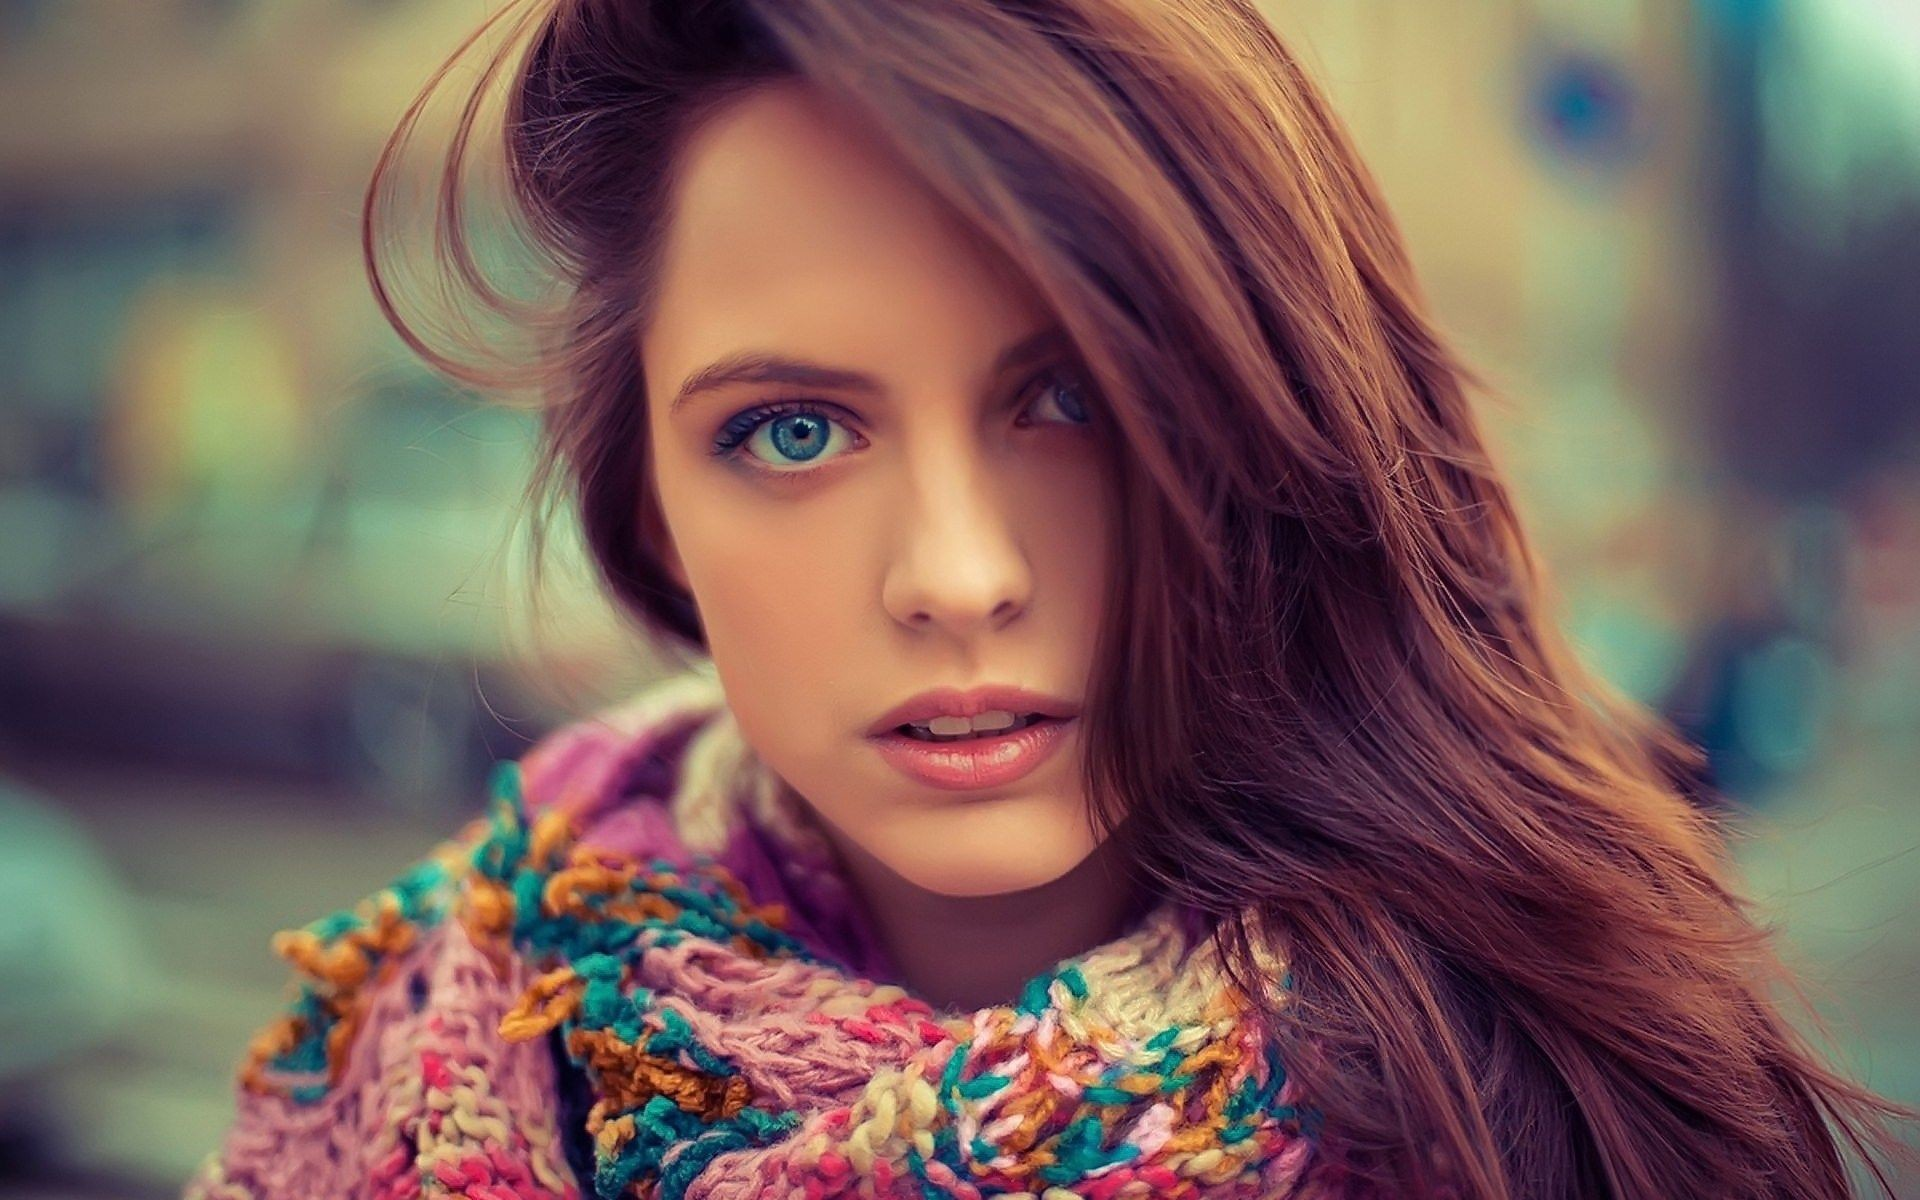 Beautiful Girls Photography Tumblr Cool Wallpapers